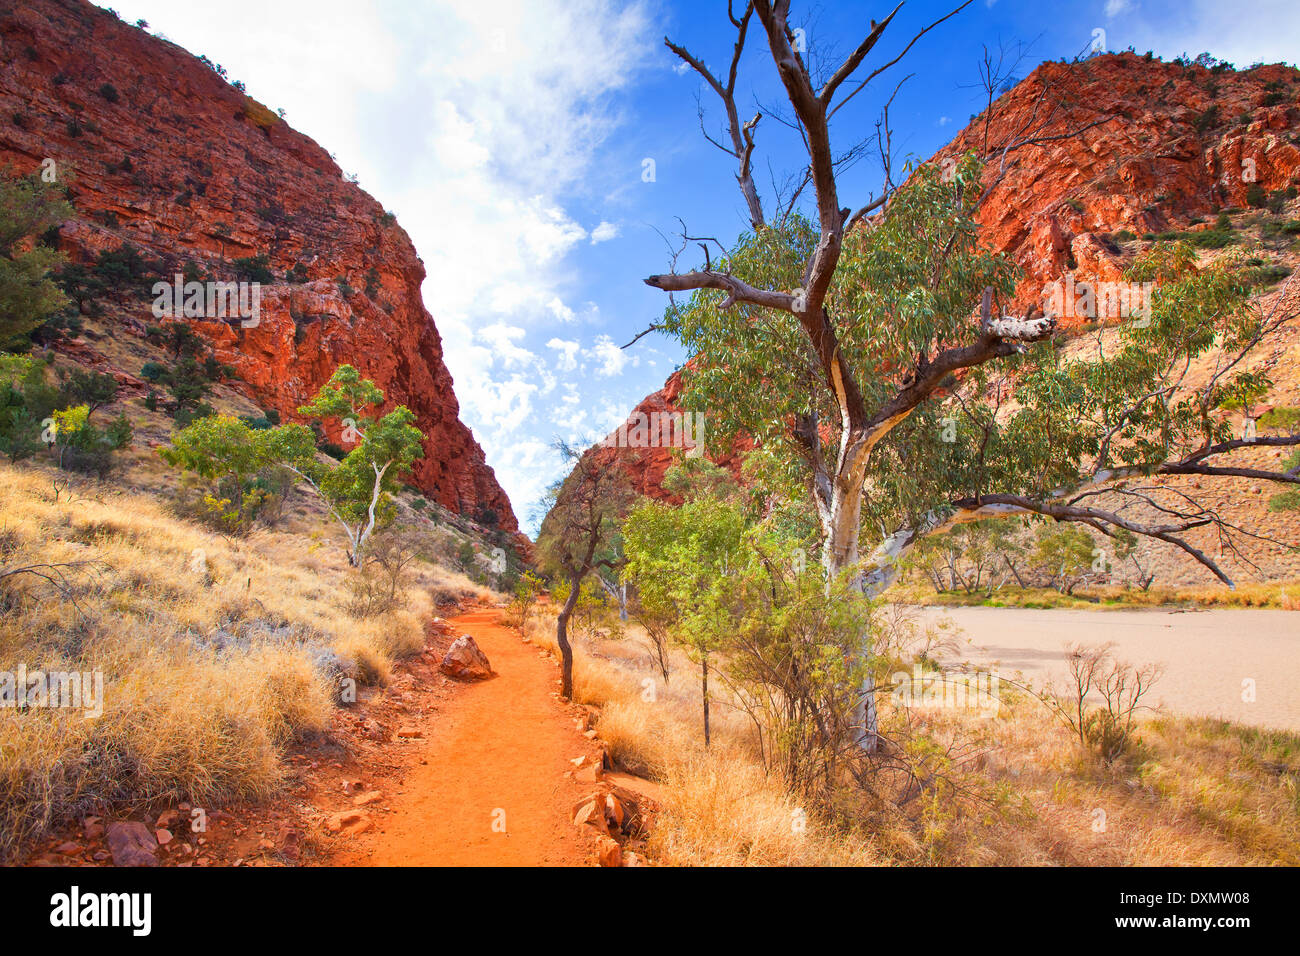 Simpson's Gap West MacDonnell Ranges Central Australia Northern Territory - Stock Image